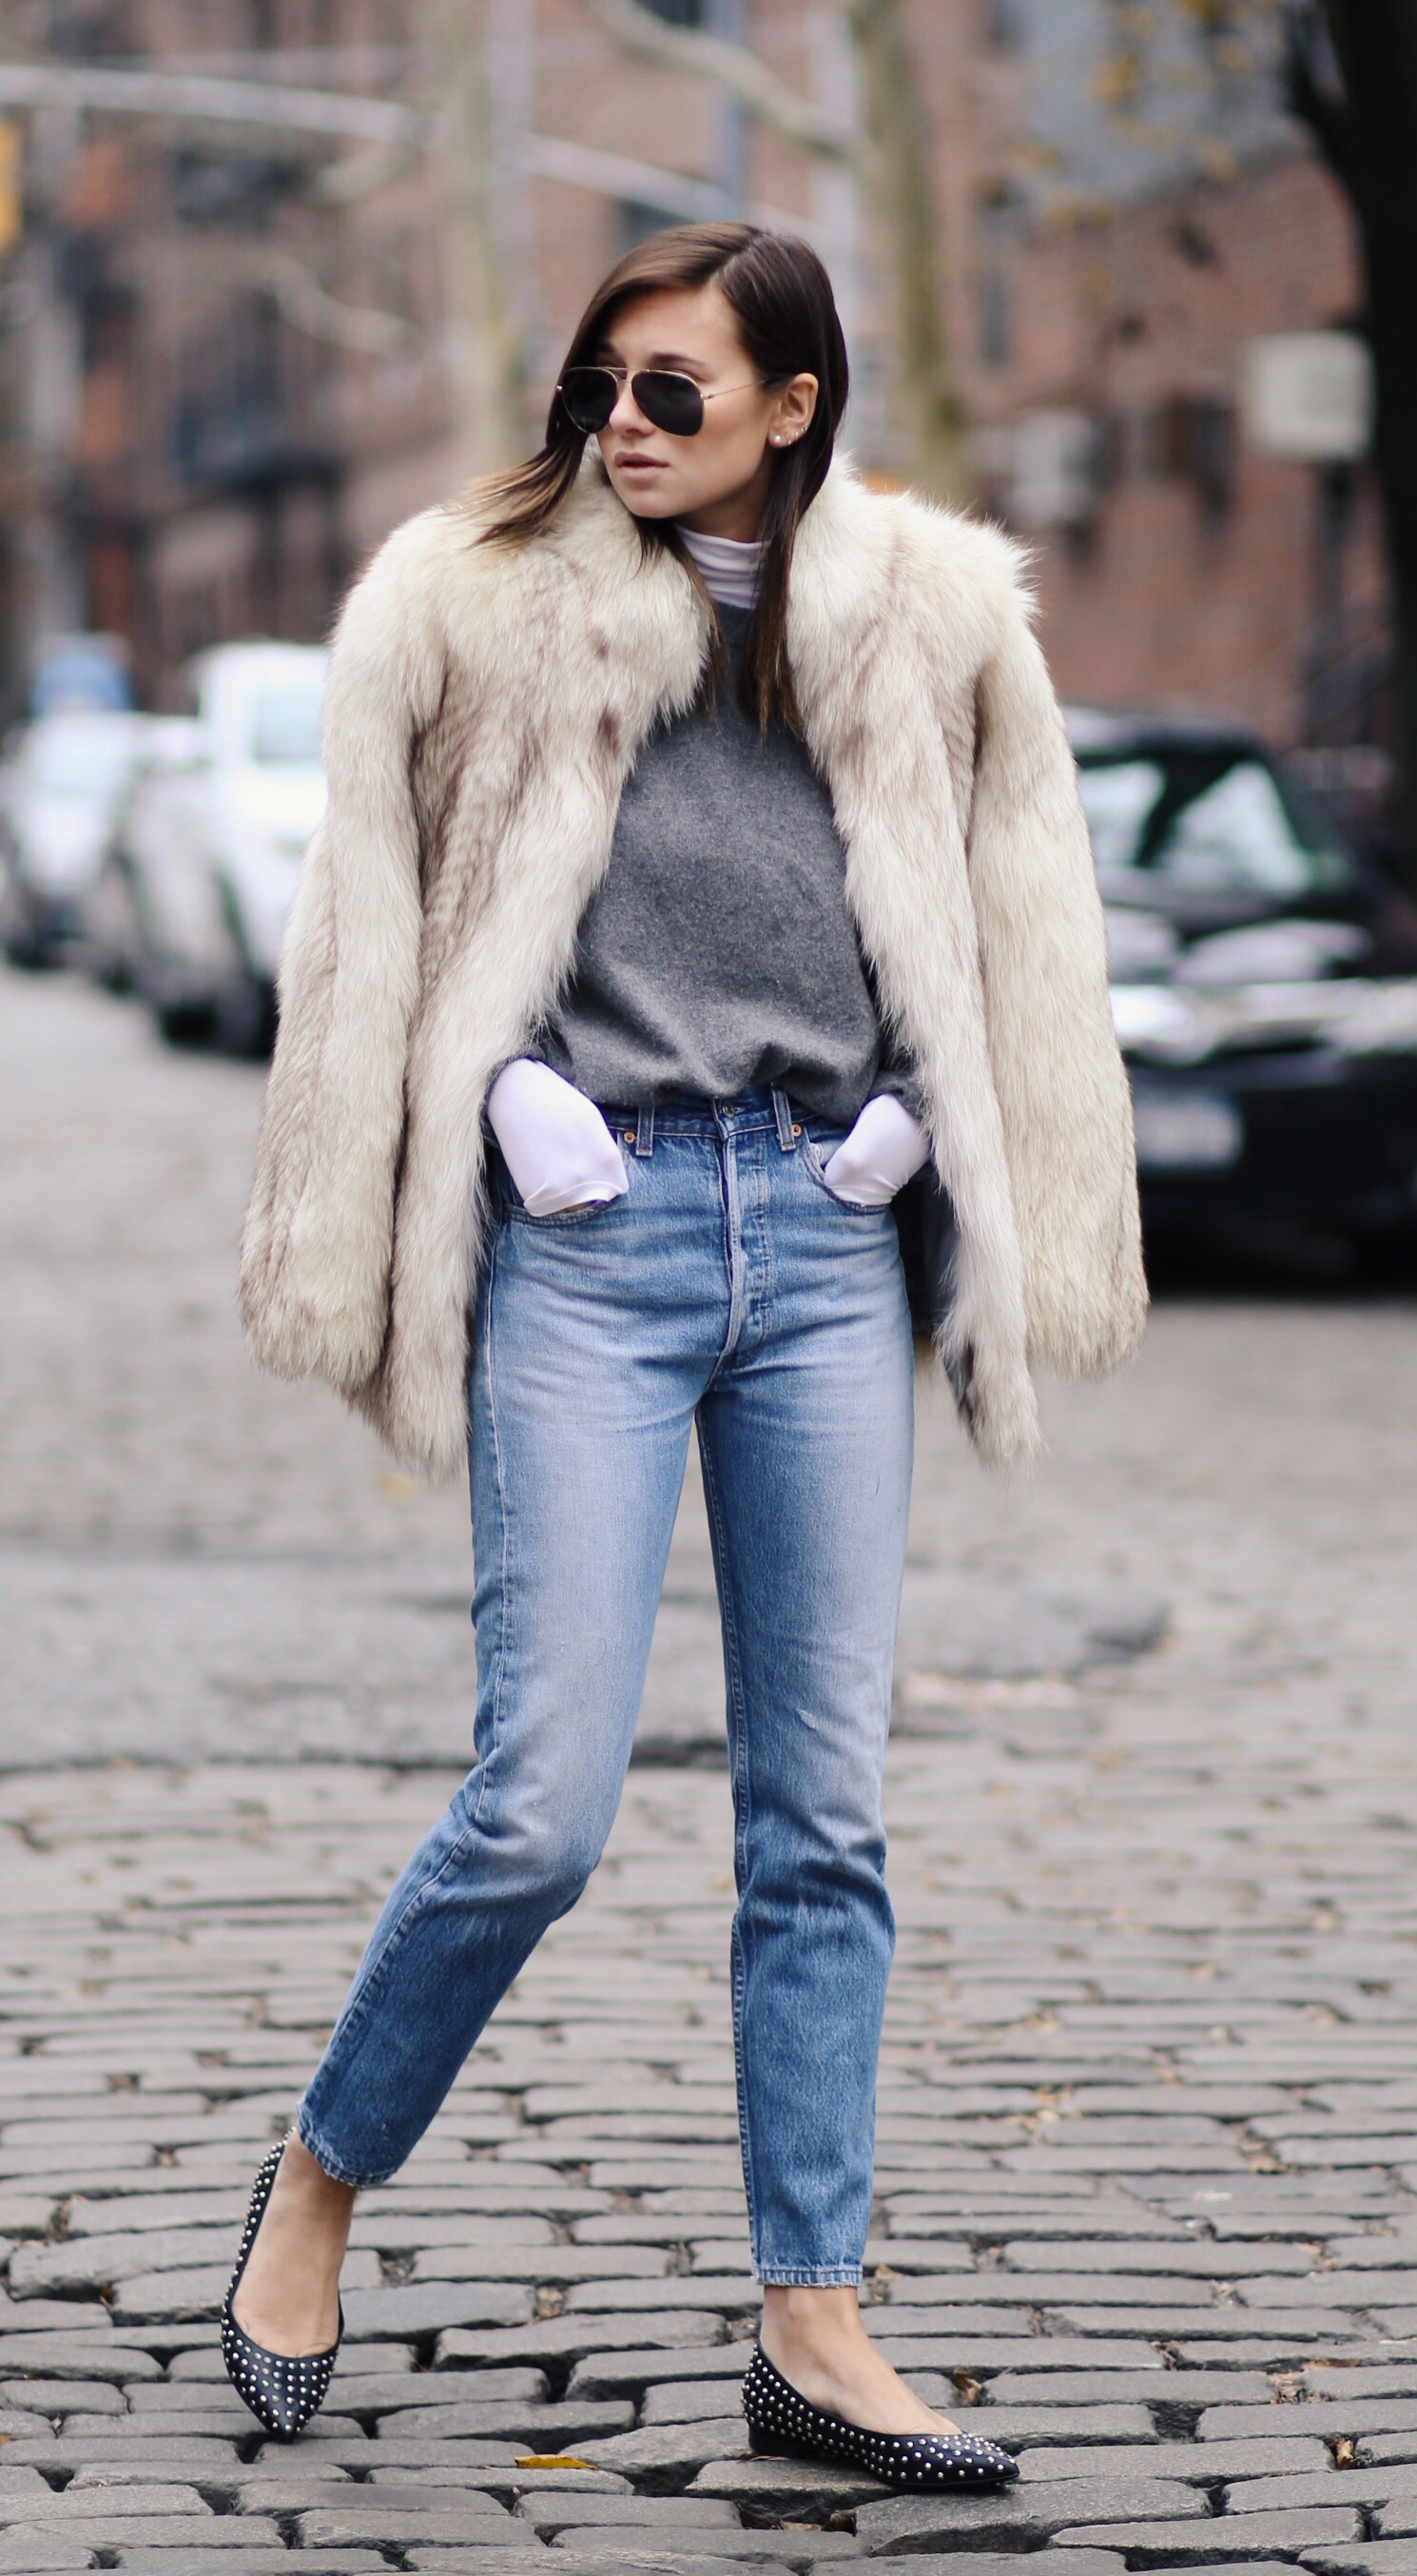 Danielle Bernstein is wearing a vintage fuzzy faux fur coat